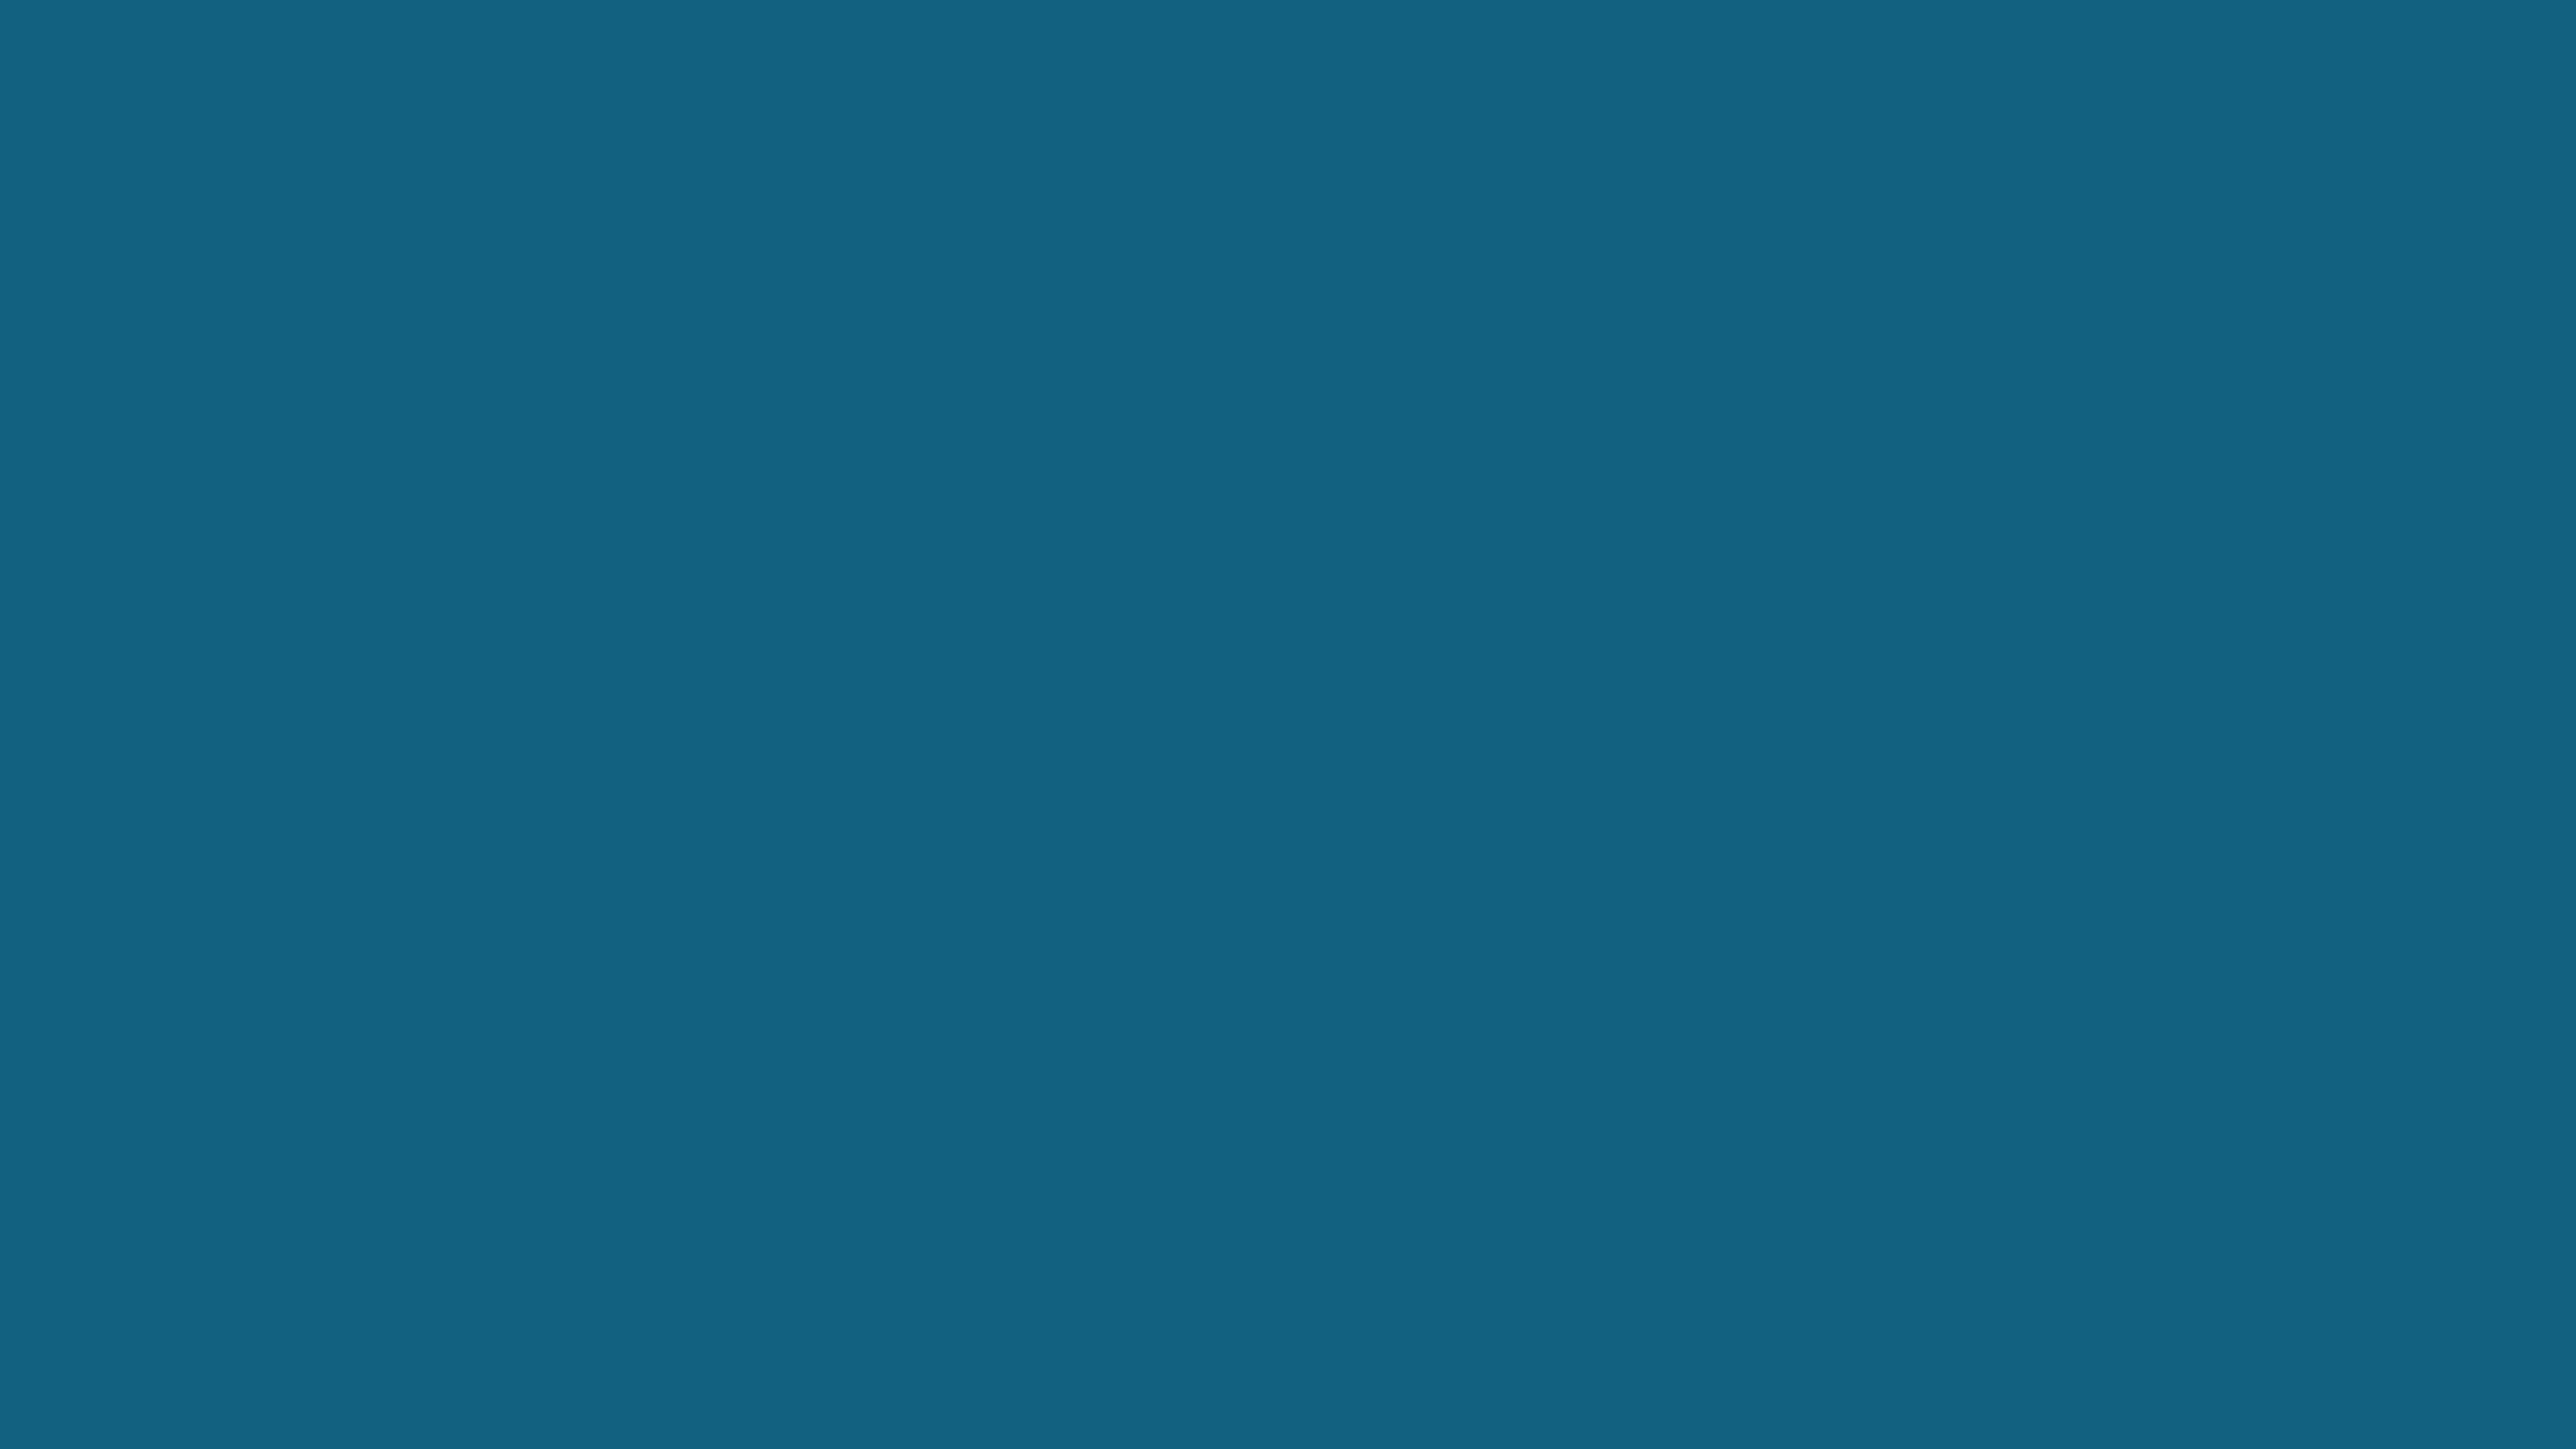 7680x4320 Blue Sapphire Solid Color Background